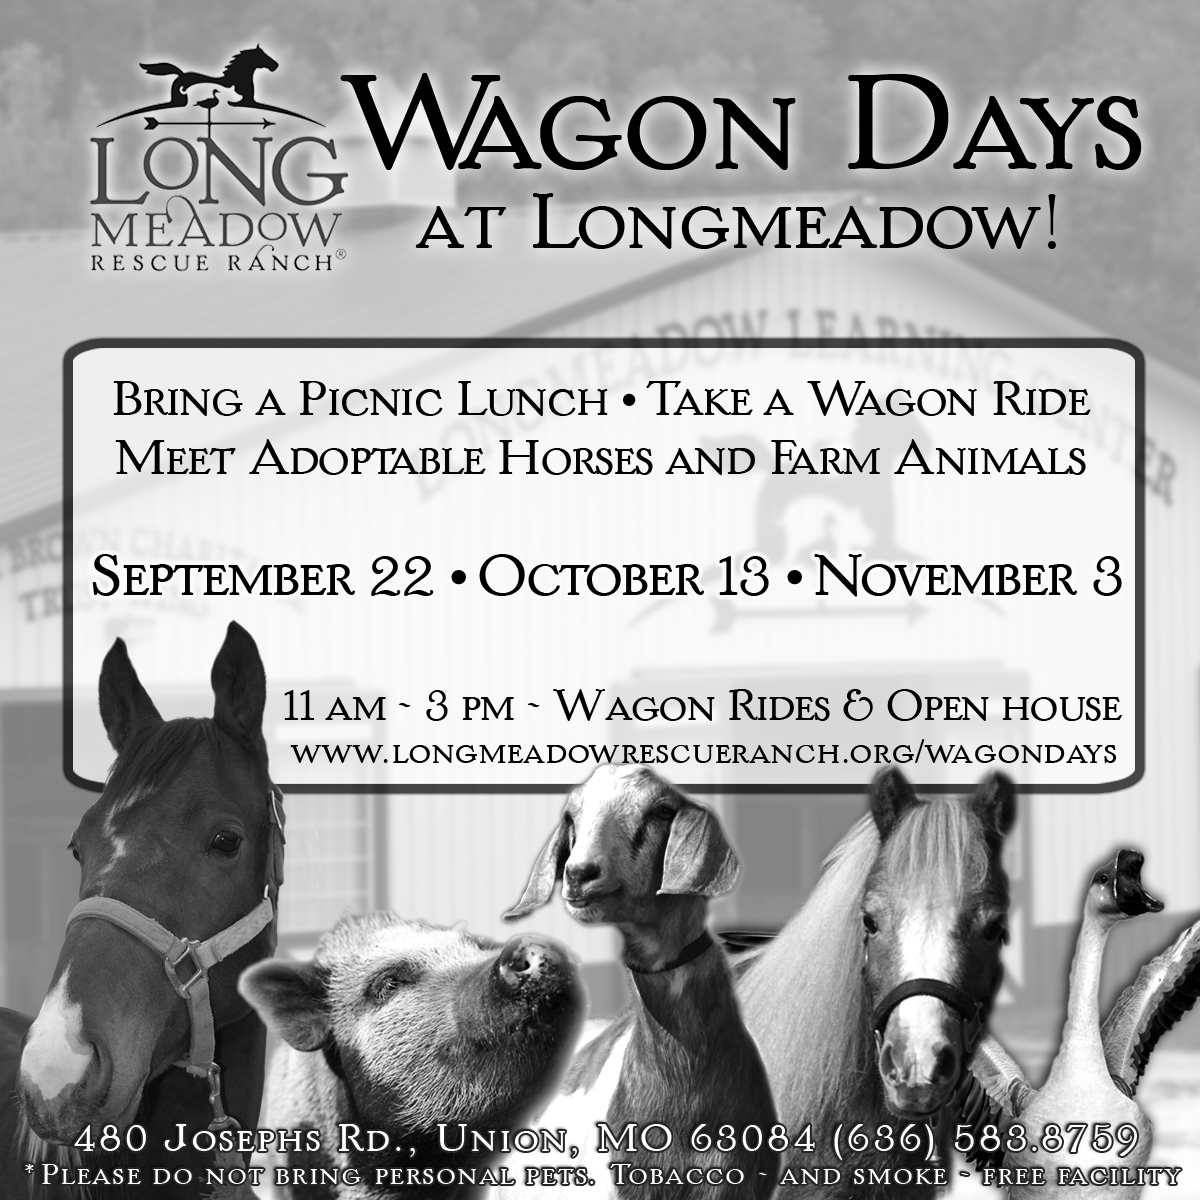 Visit Longmeadow for Fall 2018 Wagon Days events